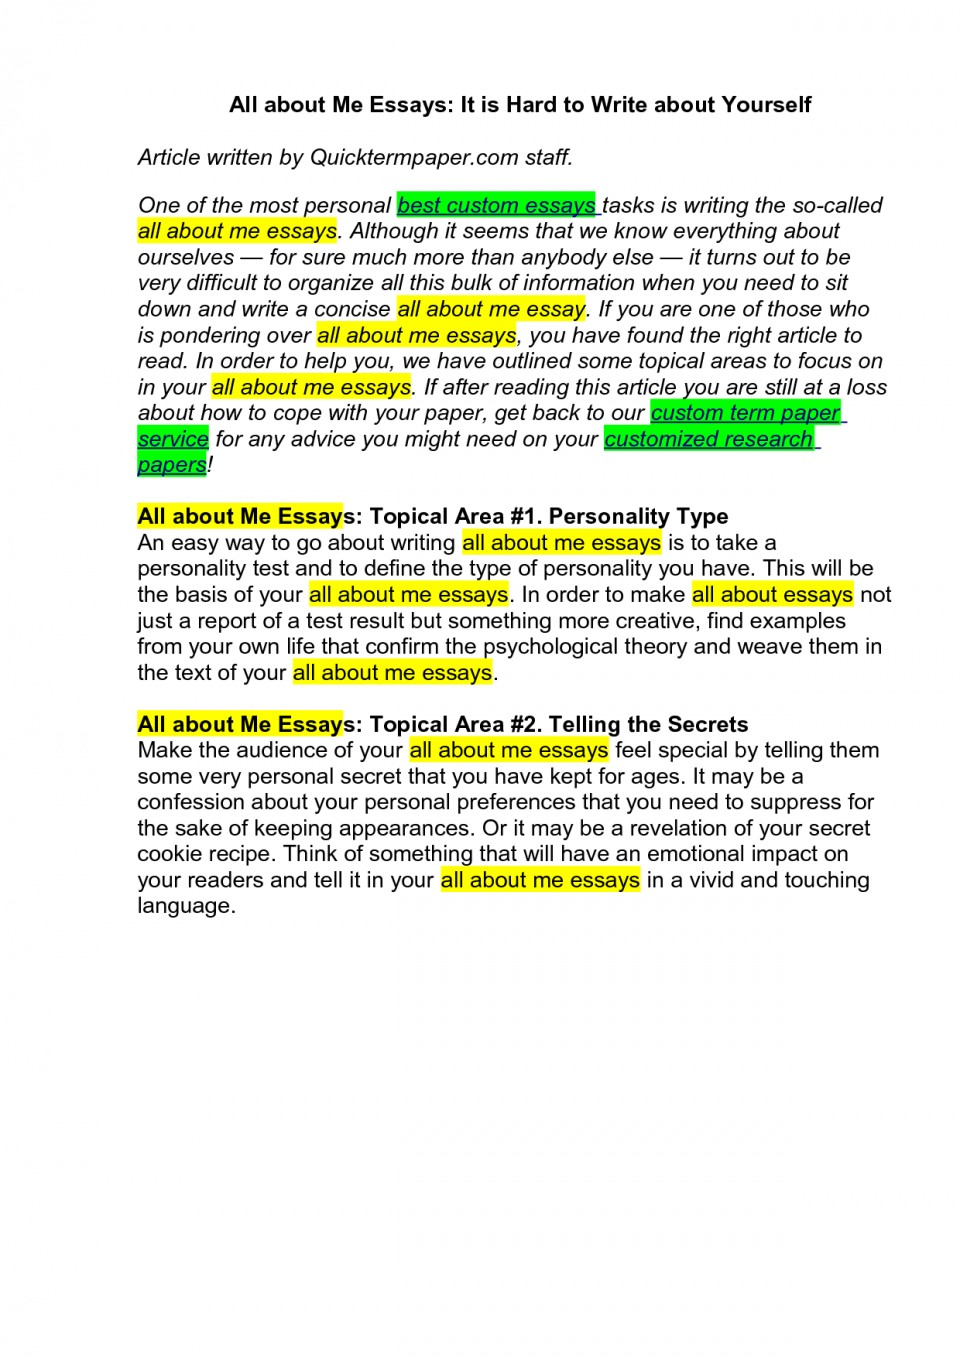 021 Essay Example How To Start An Amazing Analysis On A Book Ways With Question About Two Books 960